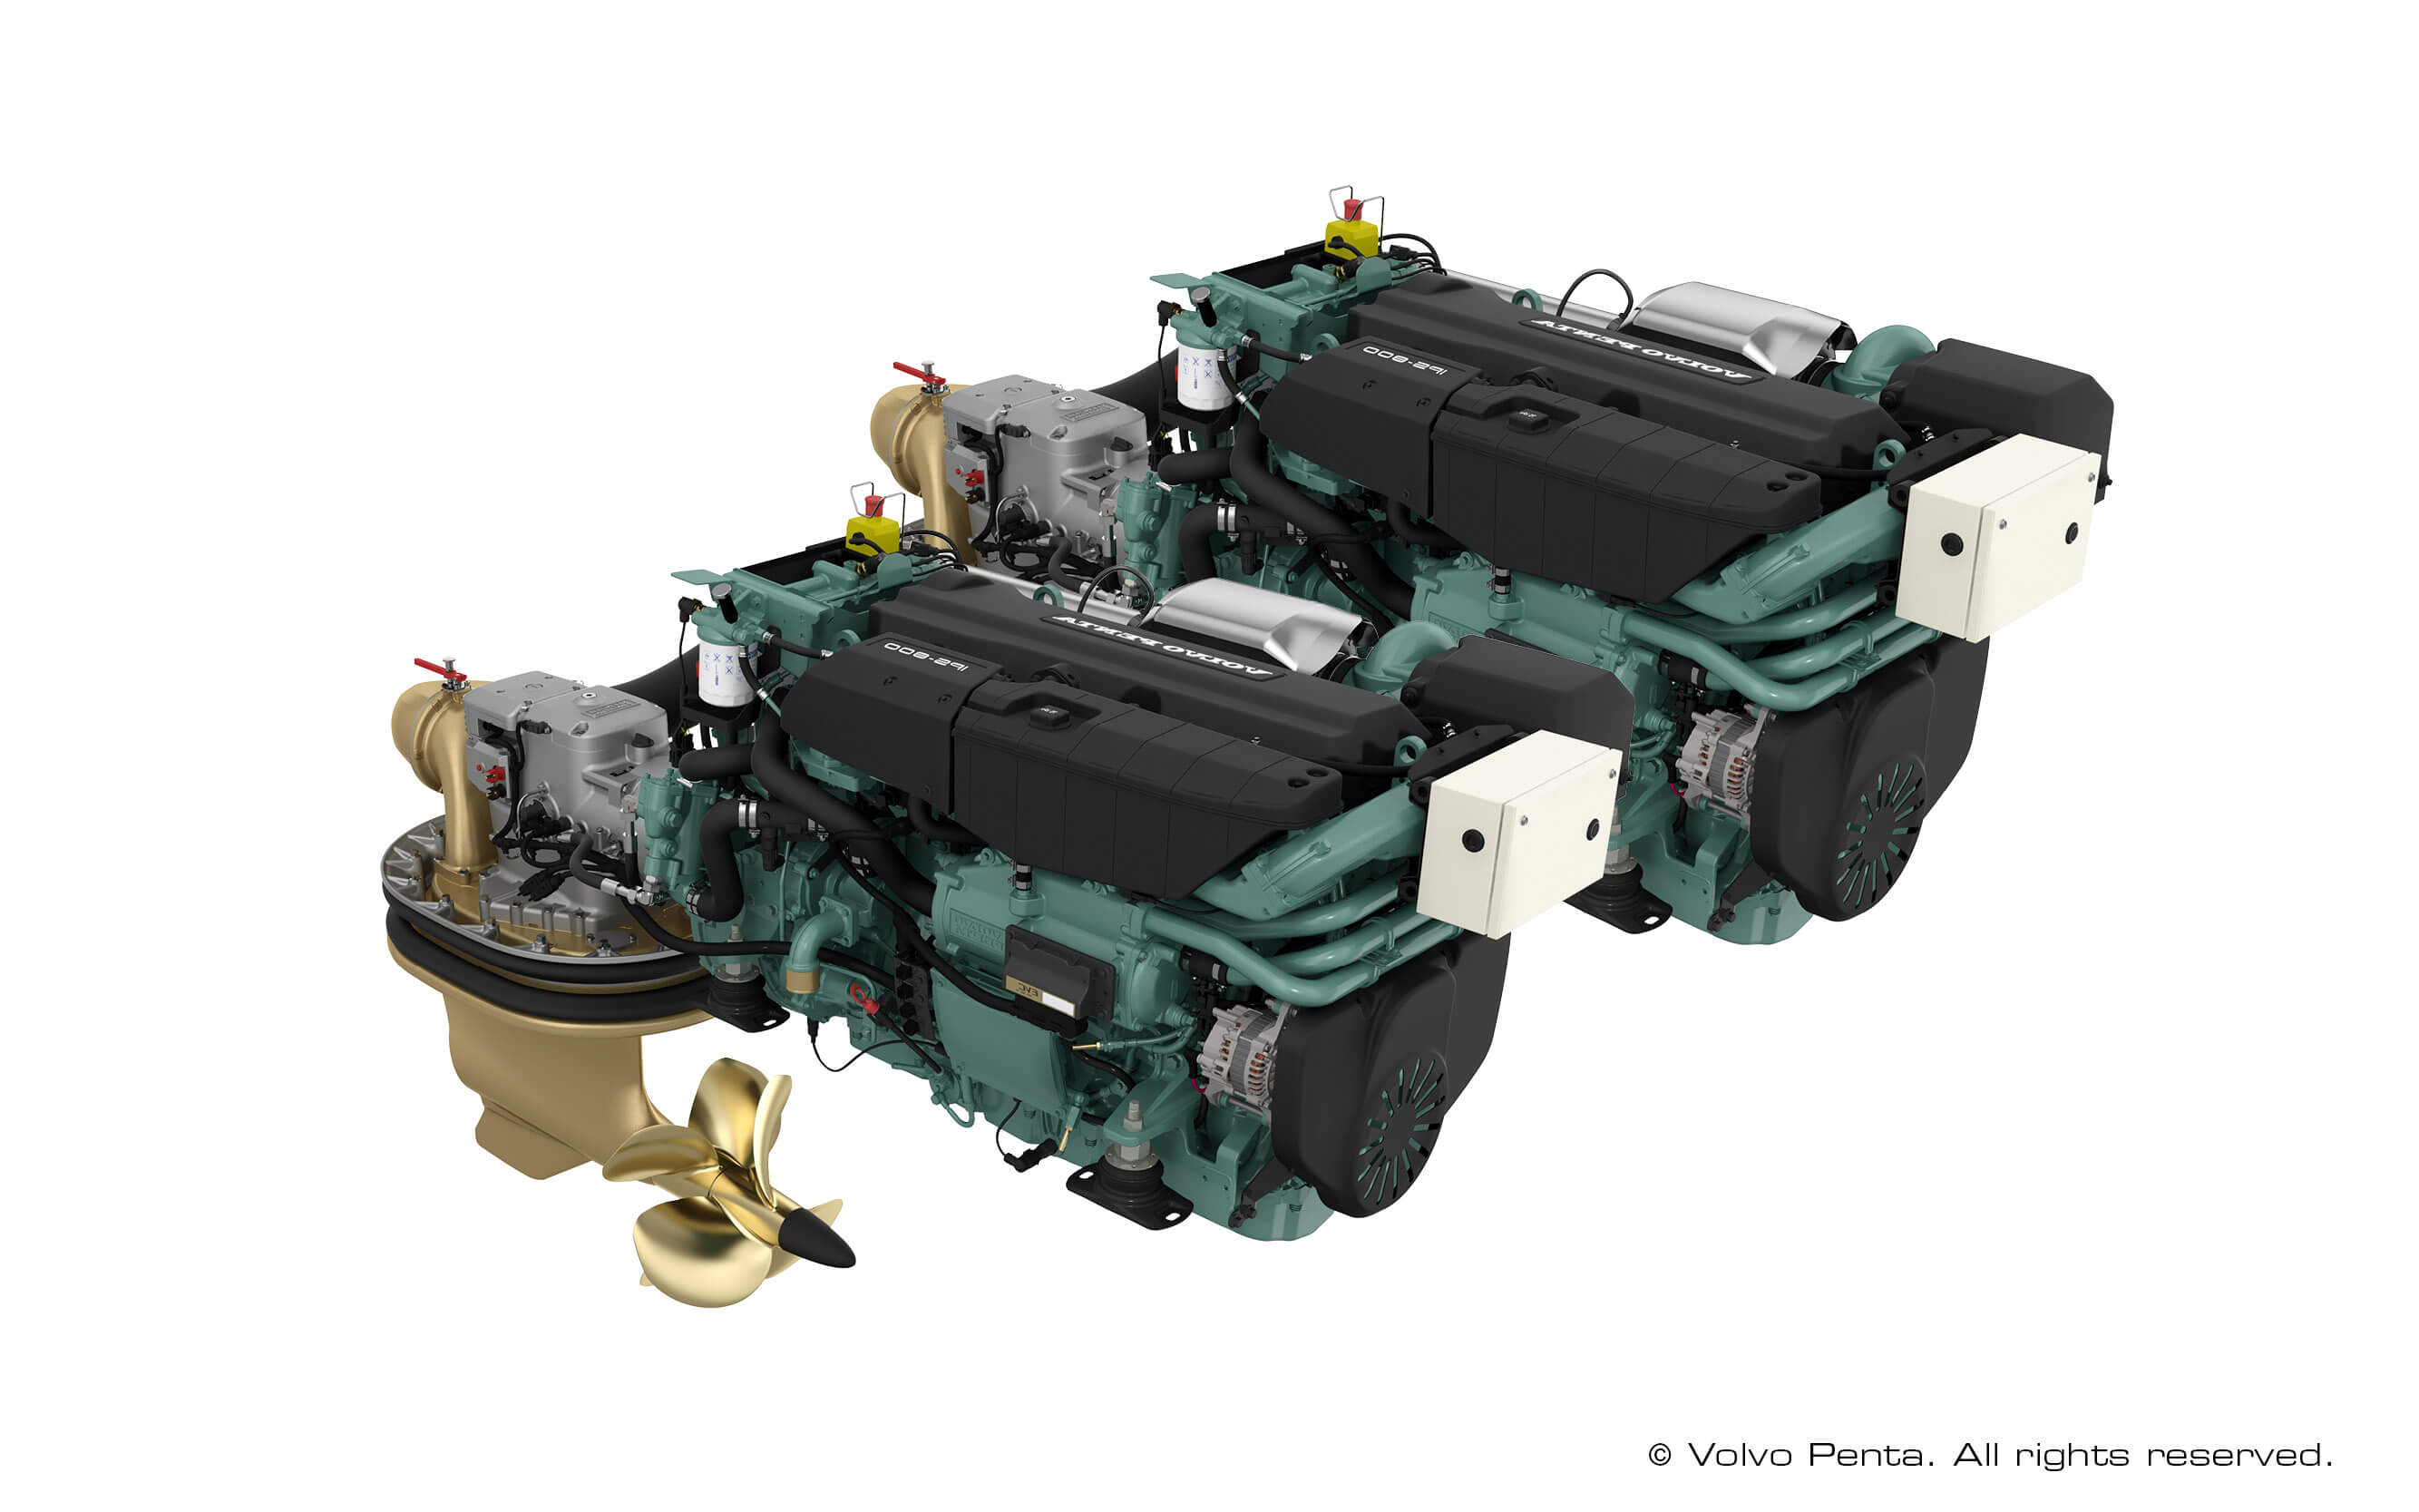 2 Volvo Penta IPS800 (600 hp) with propeller N4